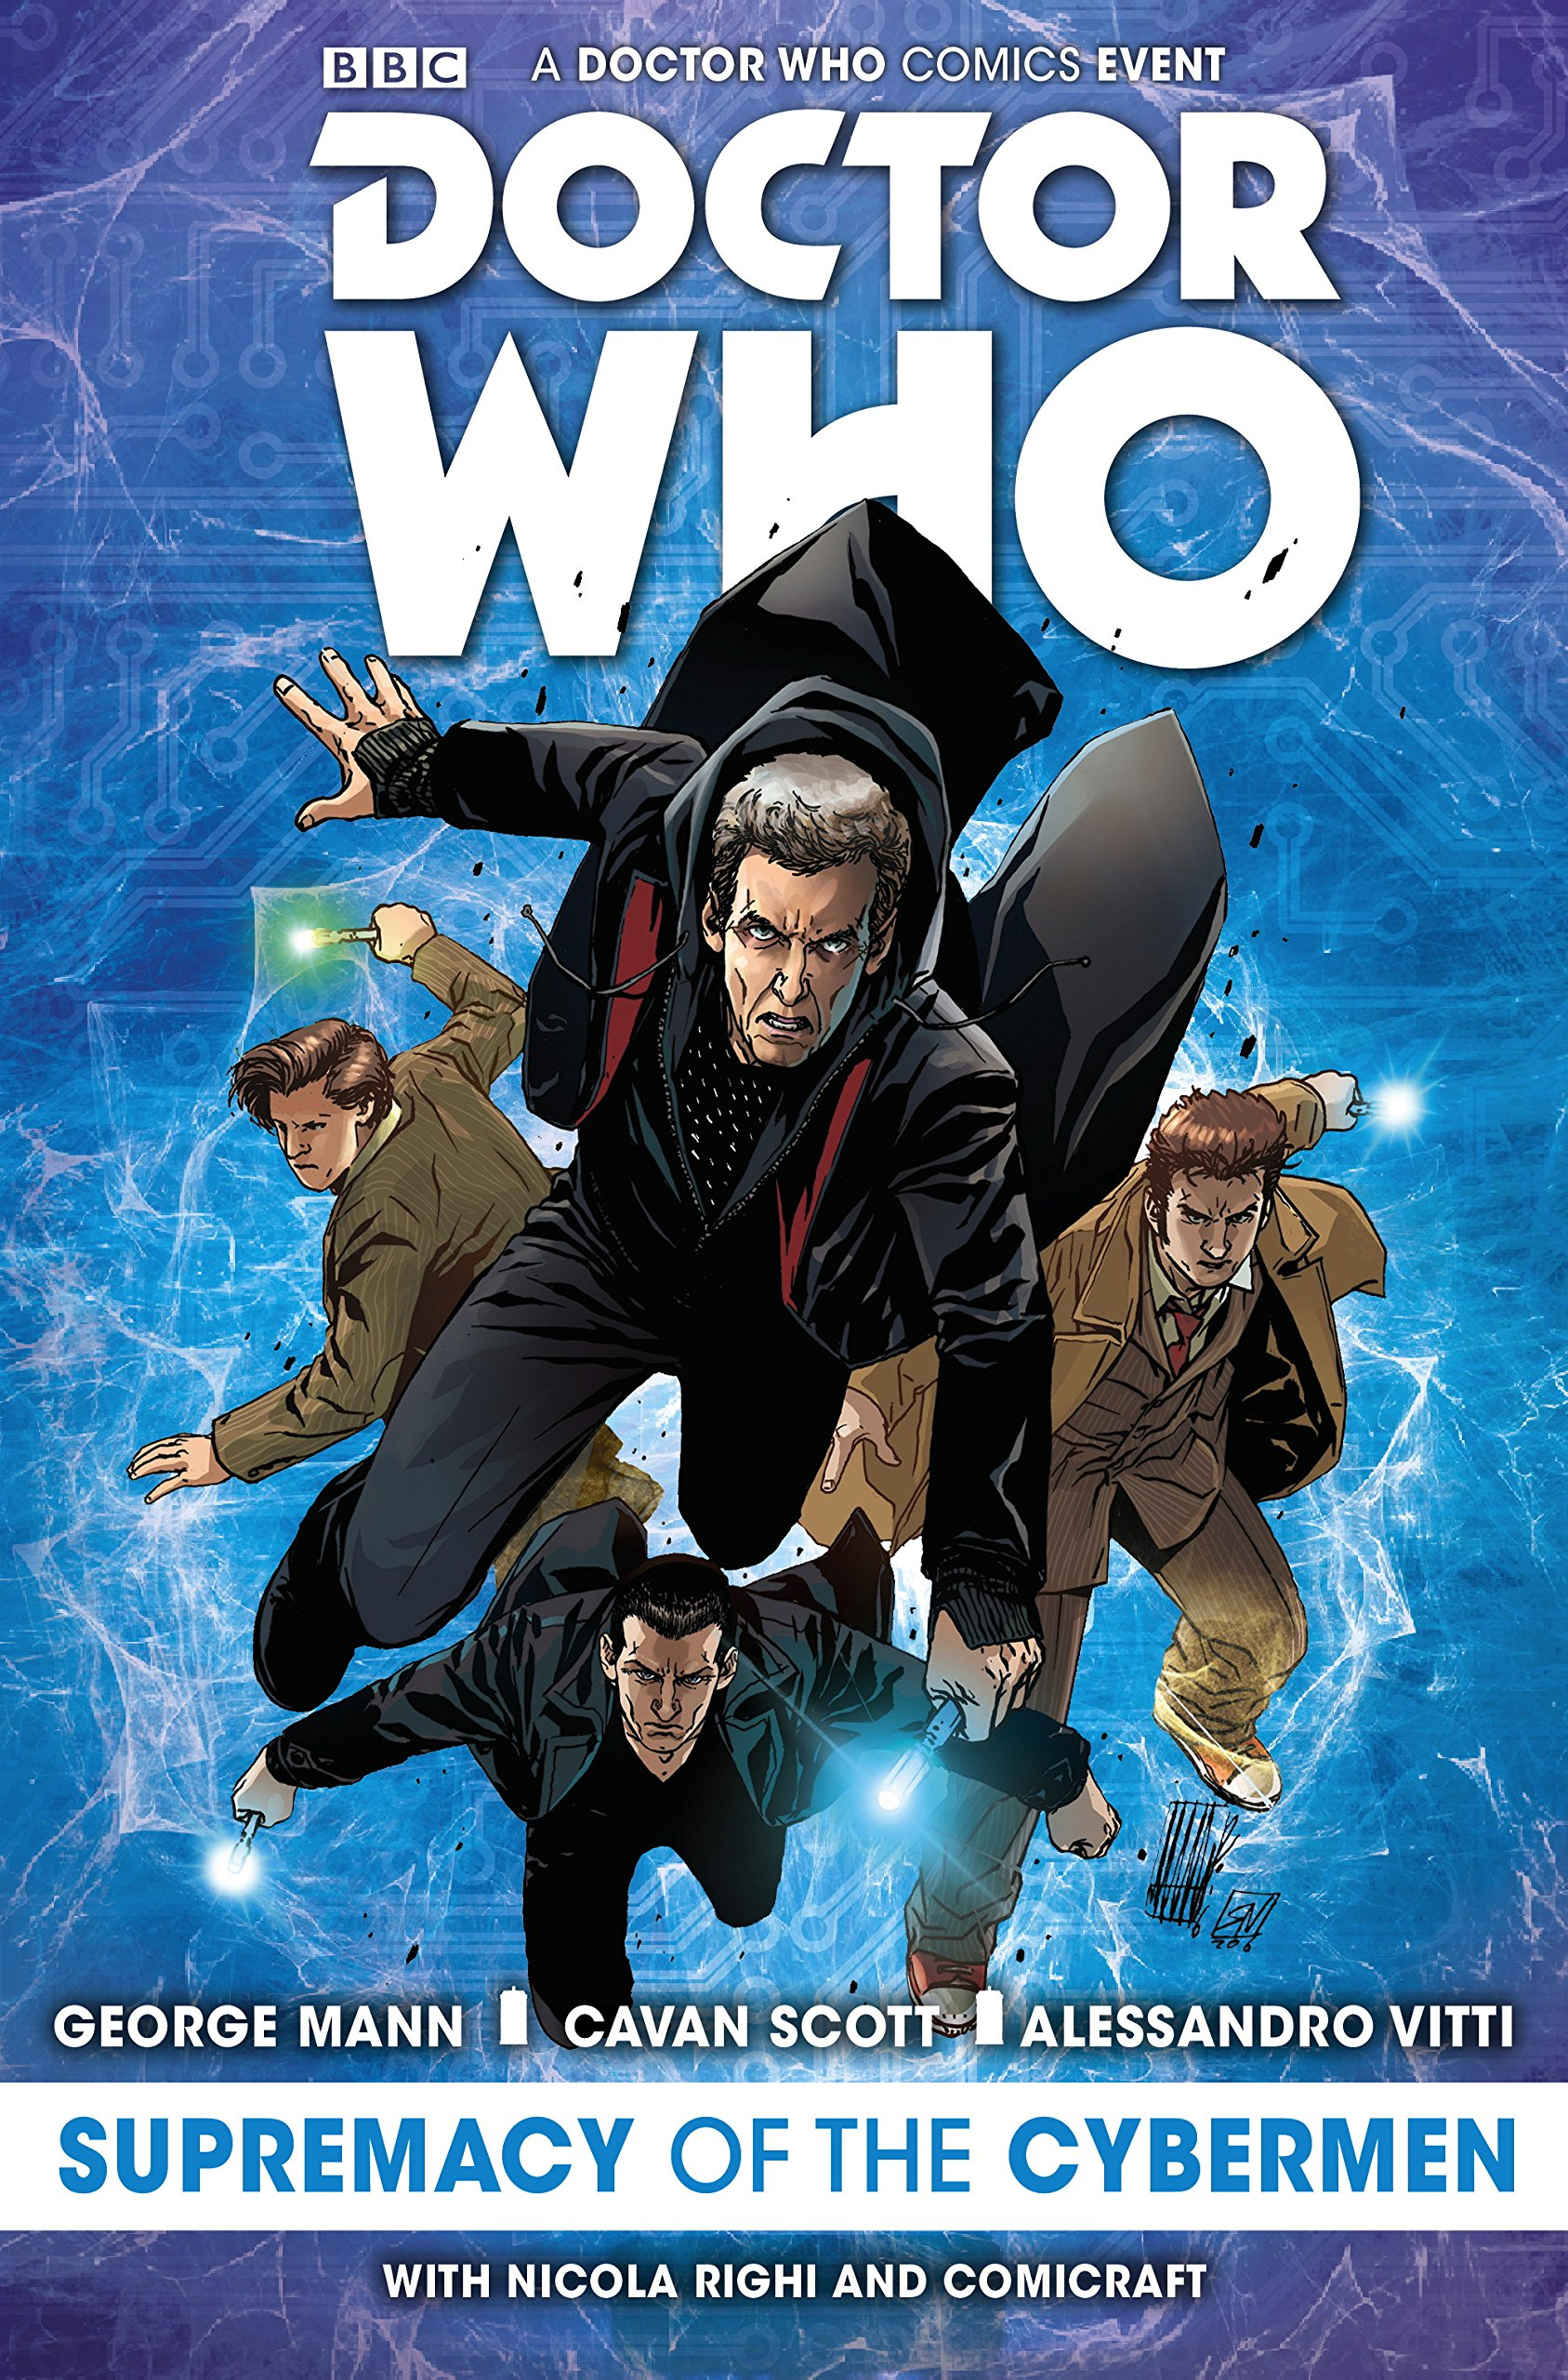 Doctor Who Event 2016: The Supremacy of the Cybermen doctor who the eleventh doctor volume 3 conversion